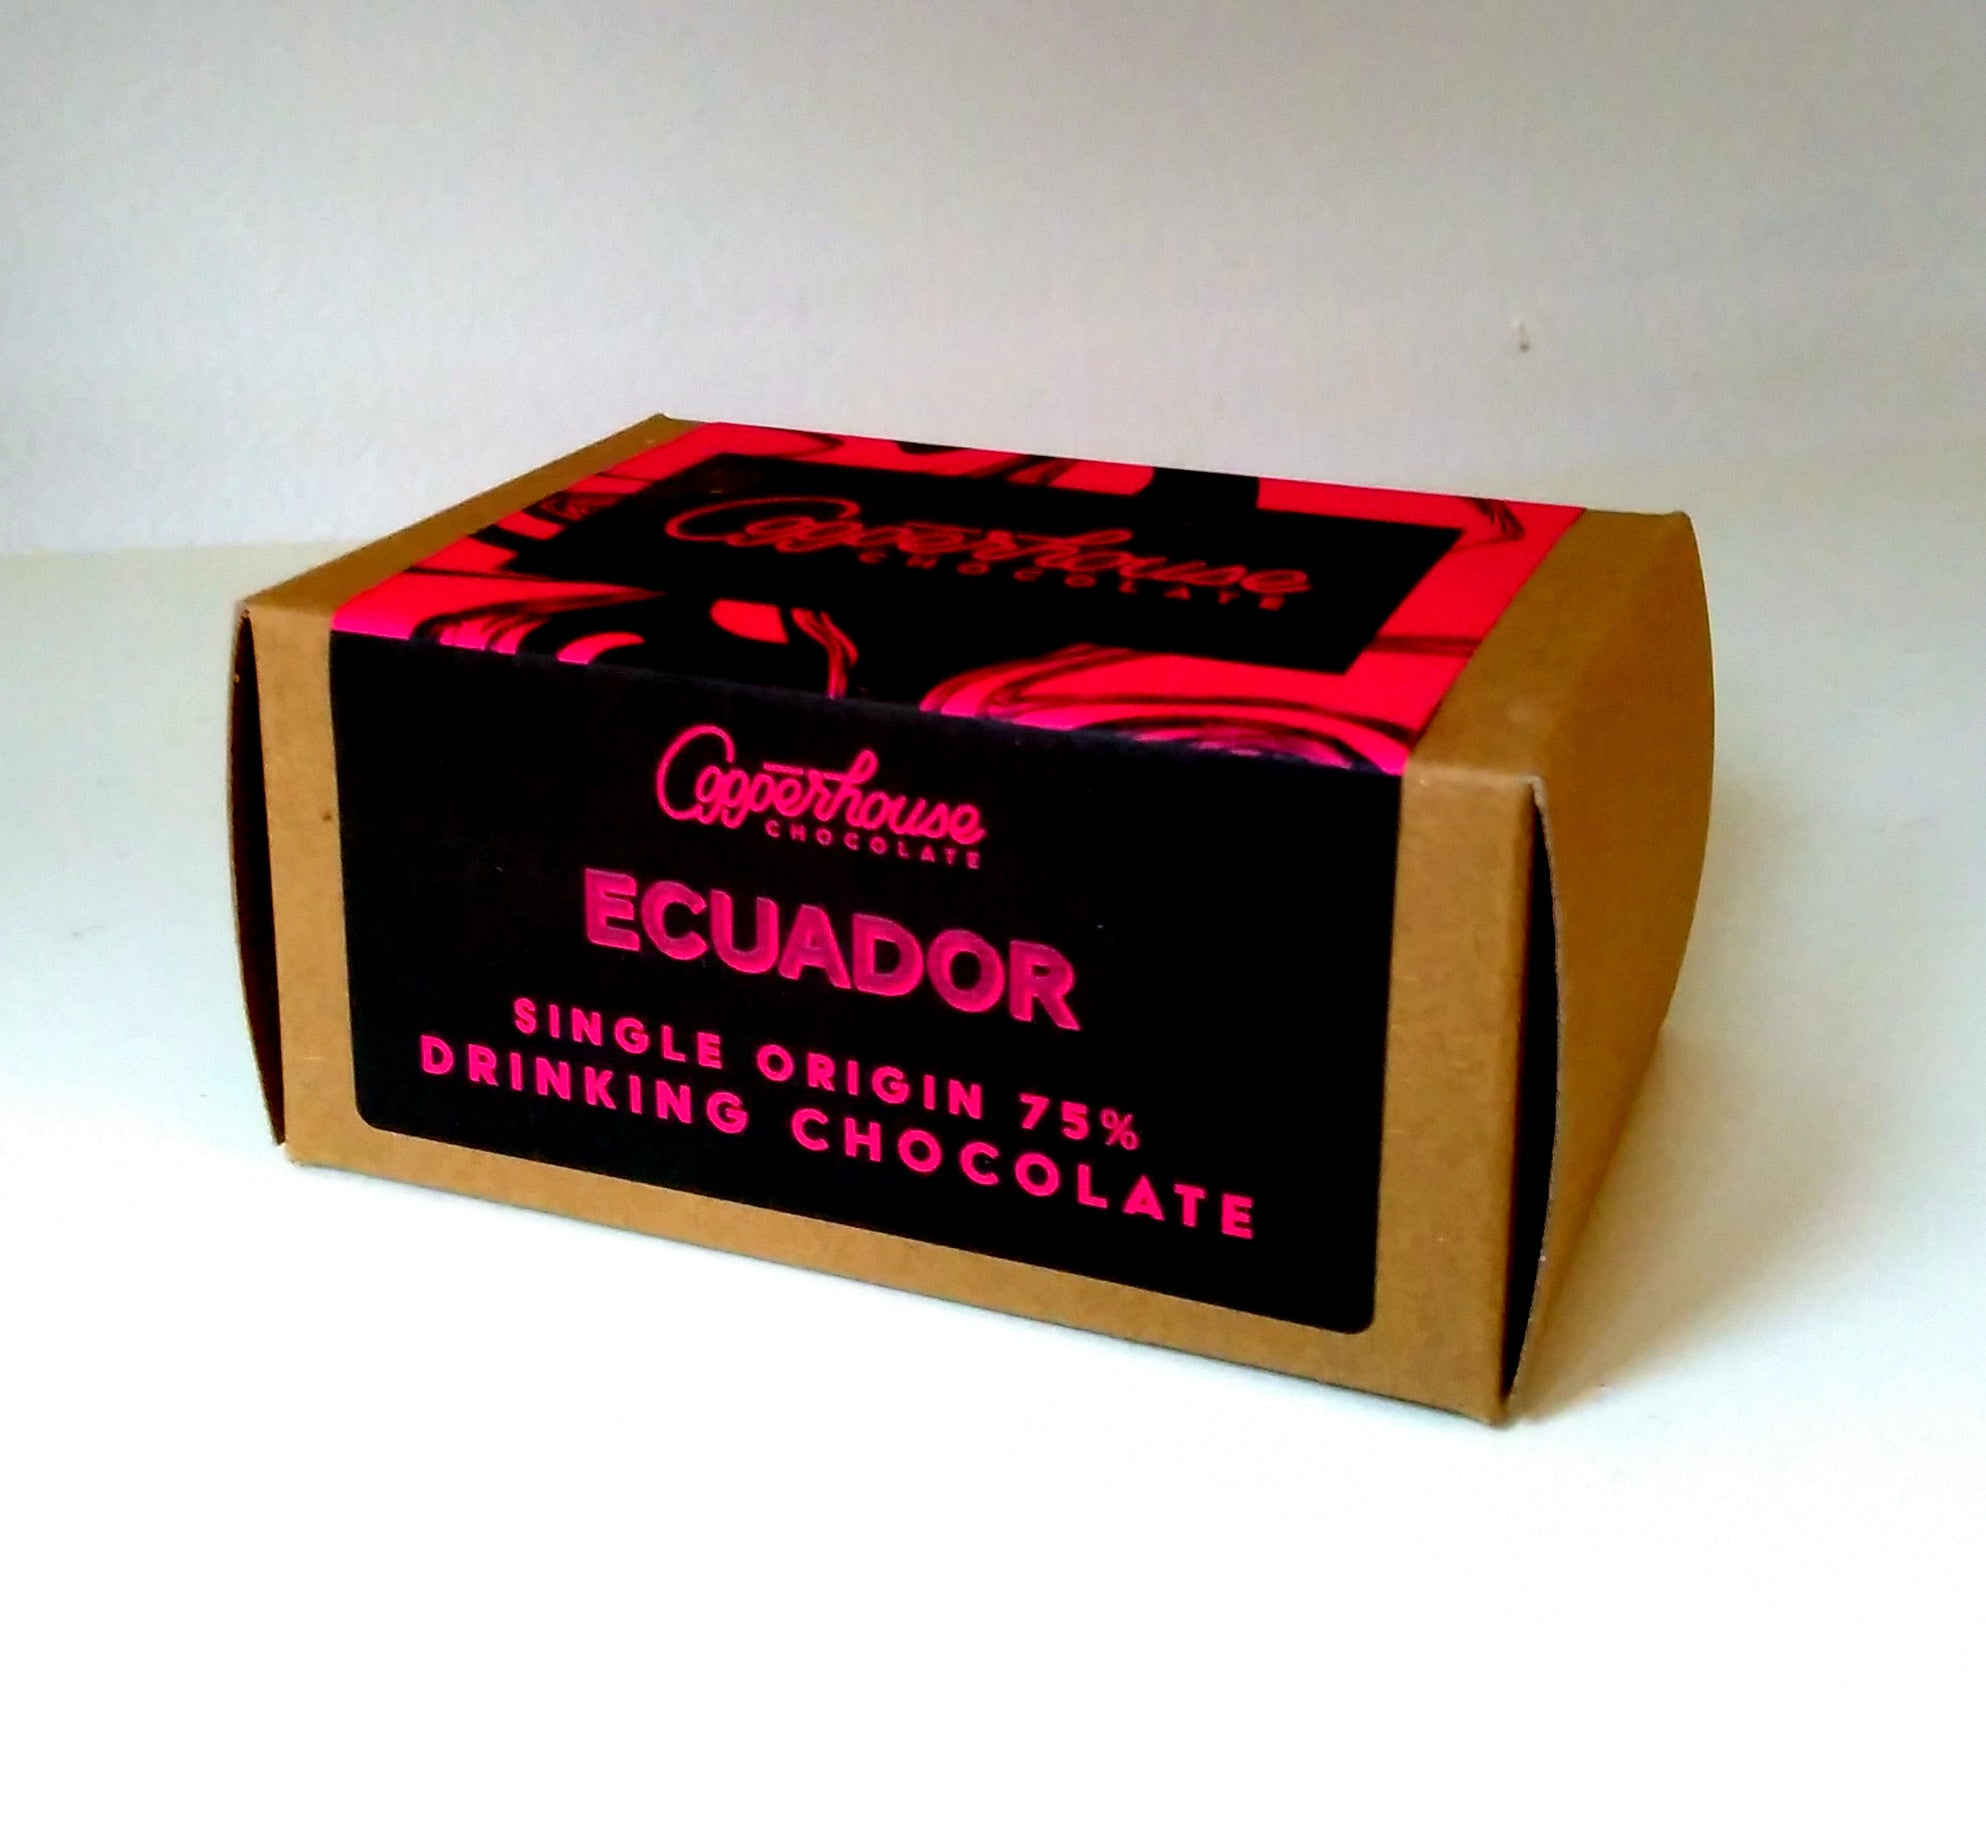 Ecuador 75% single-origin hot chocolate